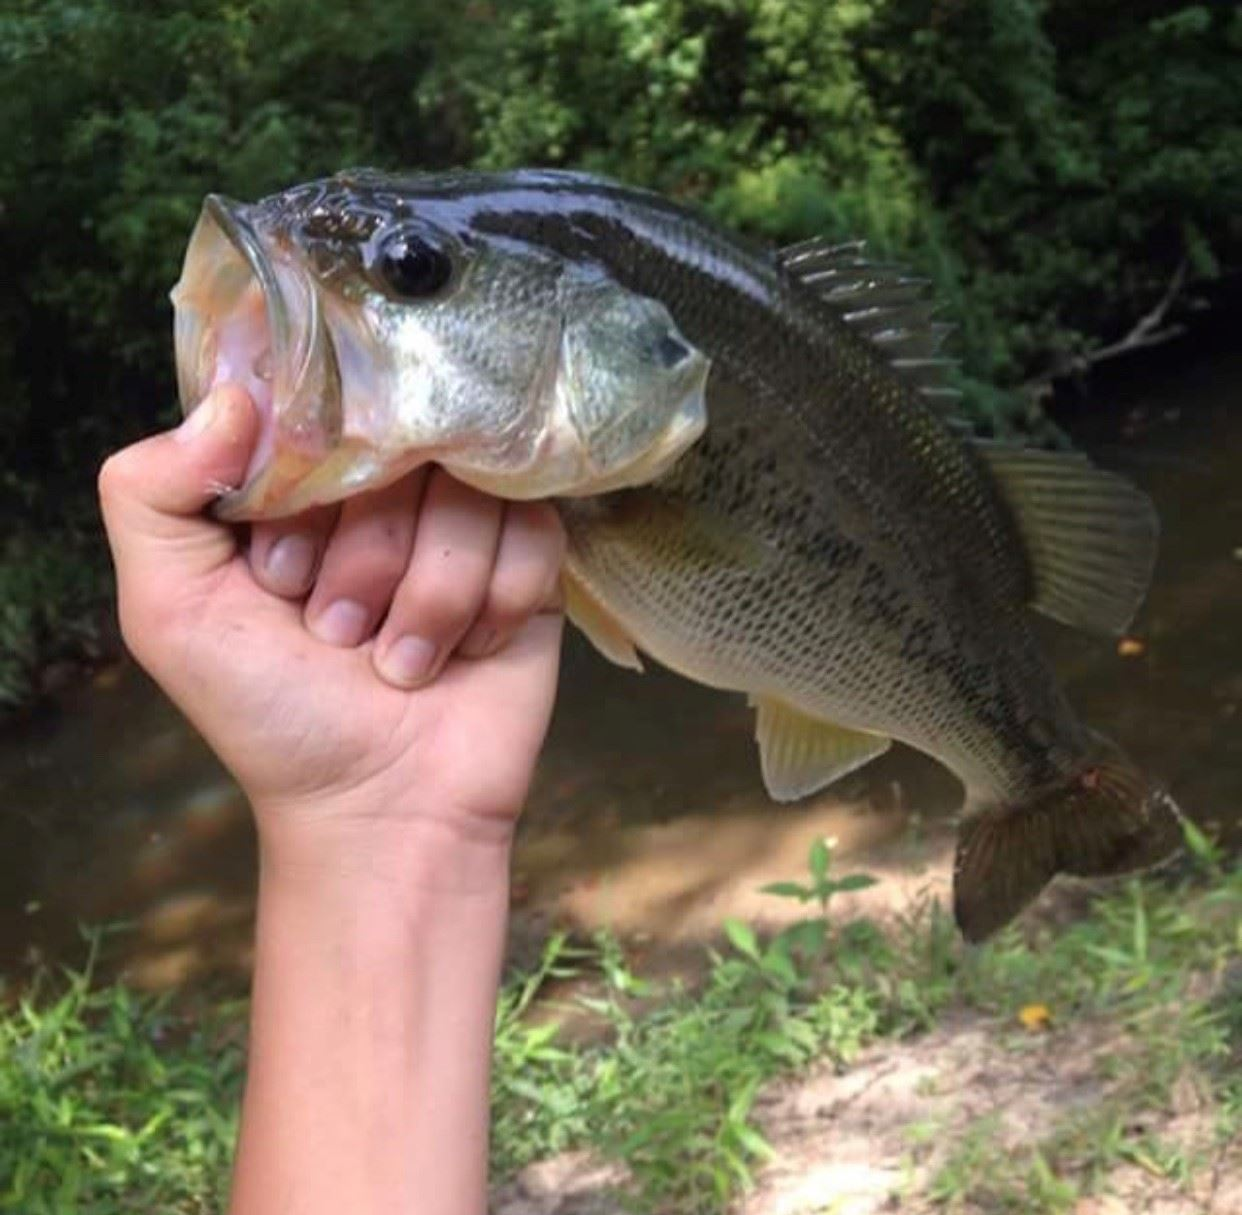 From Impaired Water to Catch and Release at Creekside Park